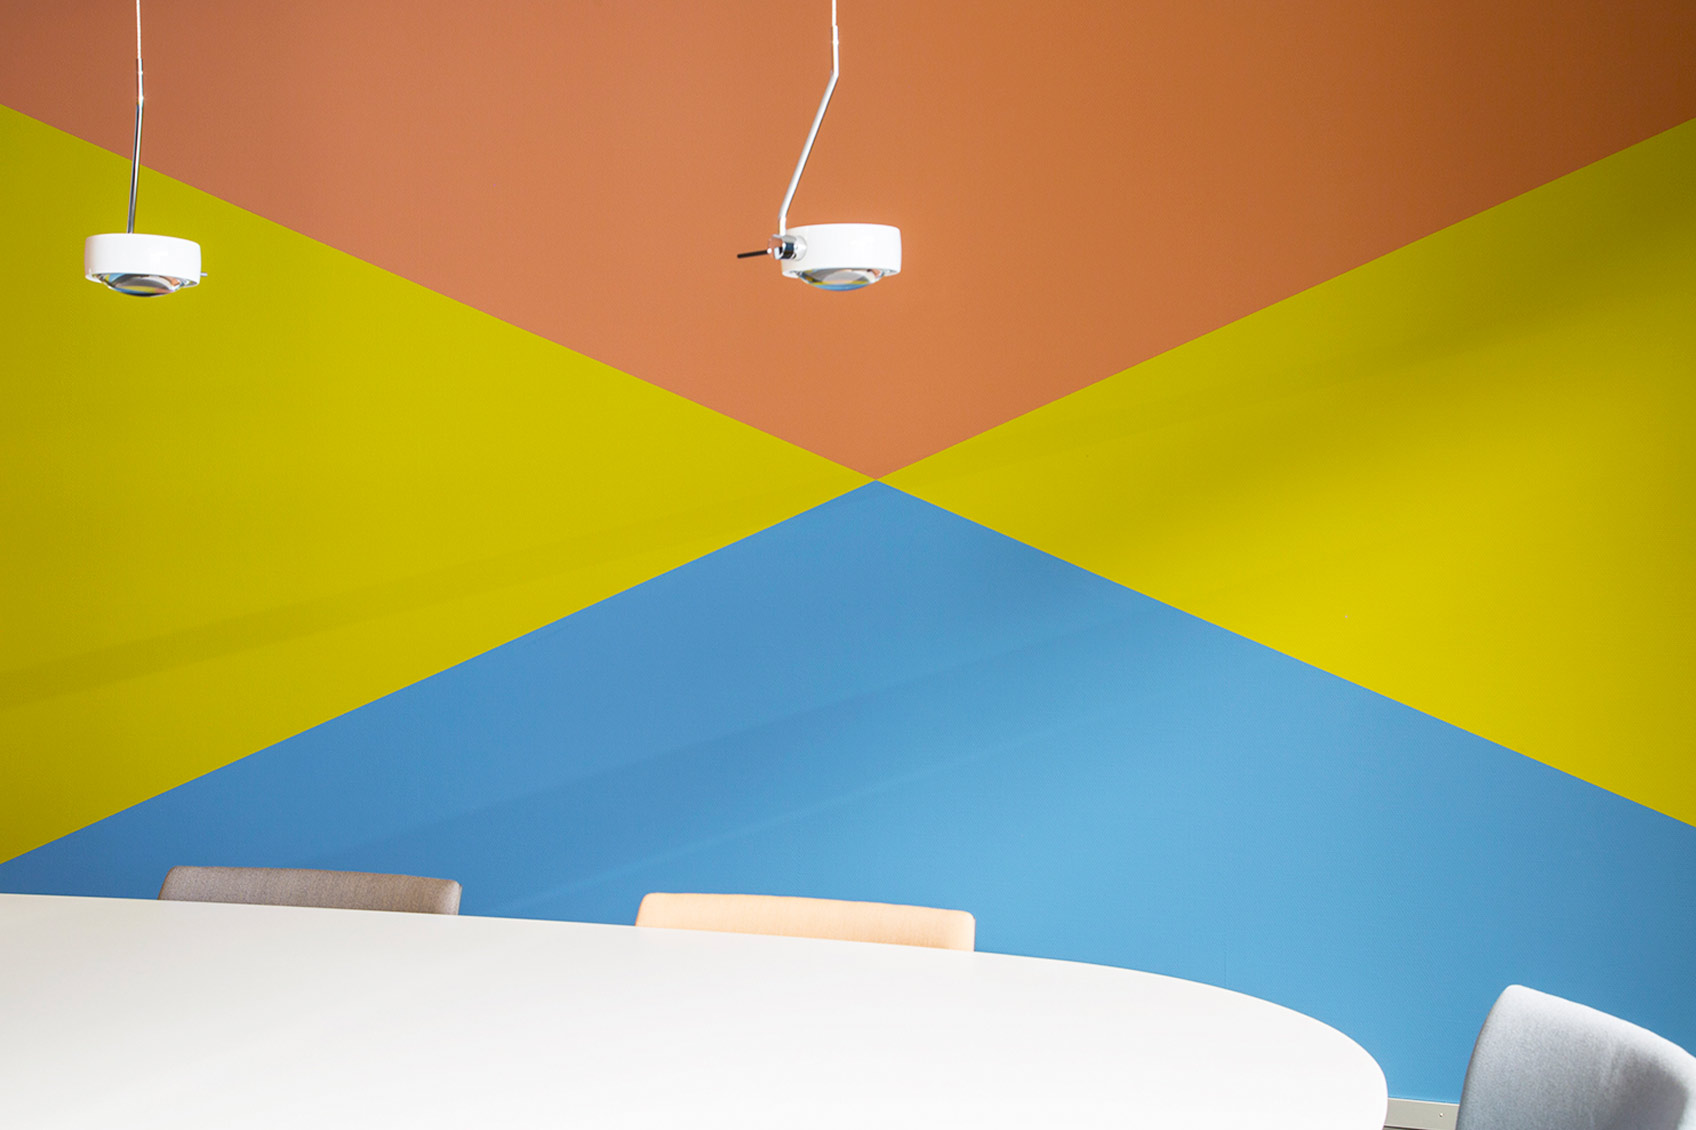 Colour design meeting room wall ©Hannah Grüninger